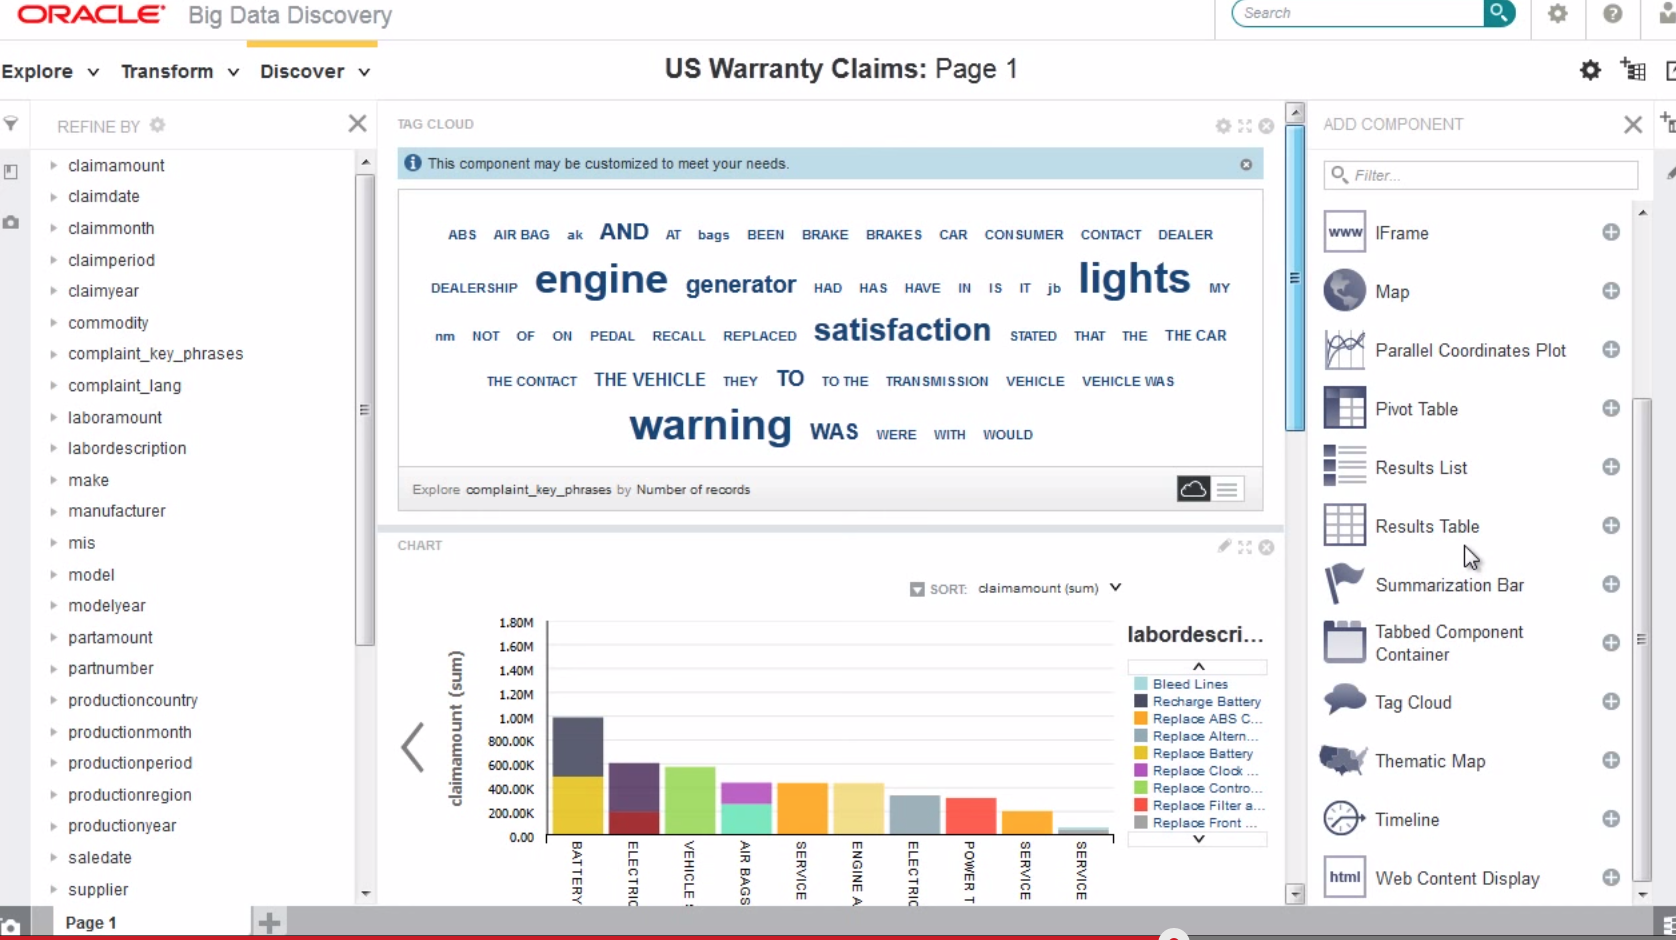 oracle big data discovery documentation